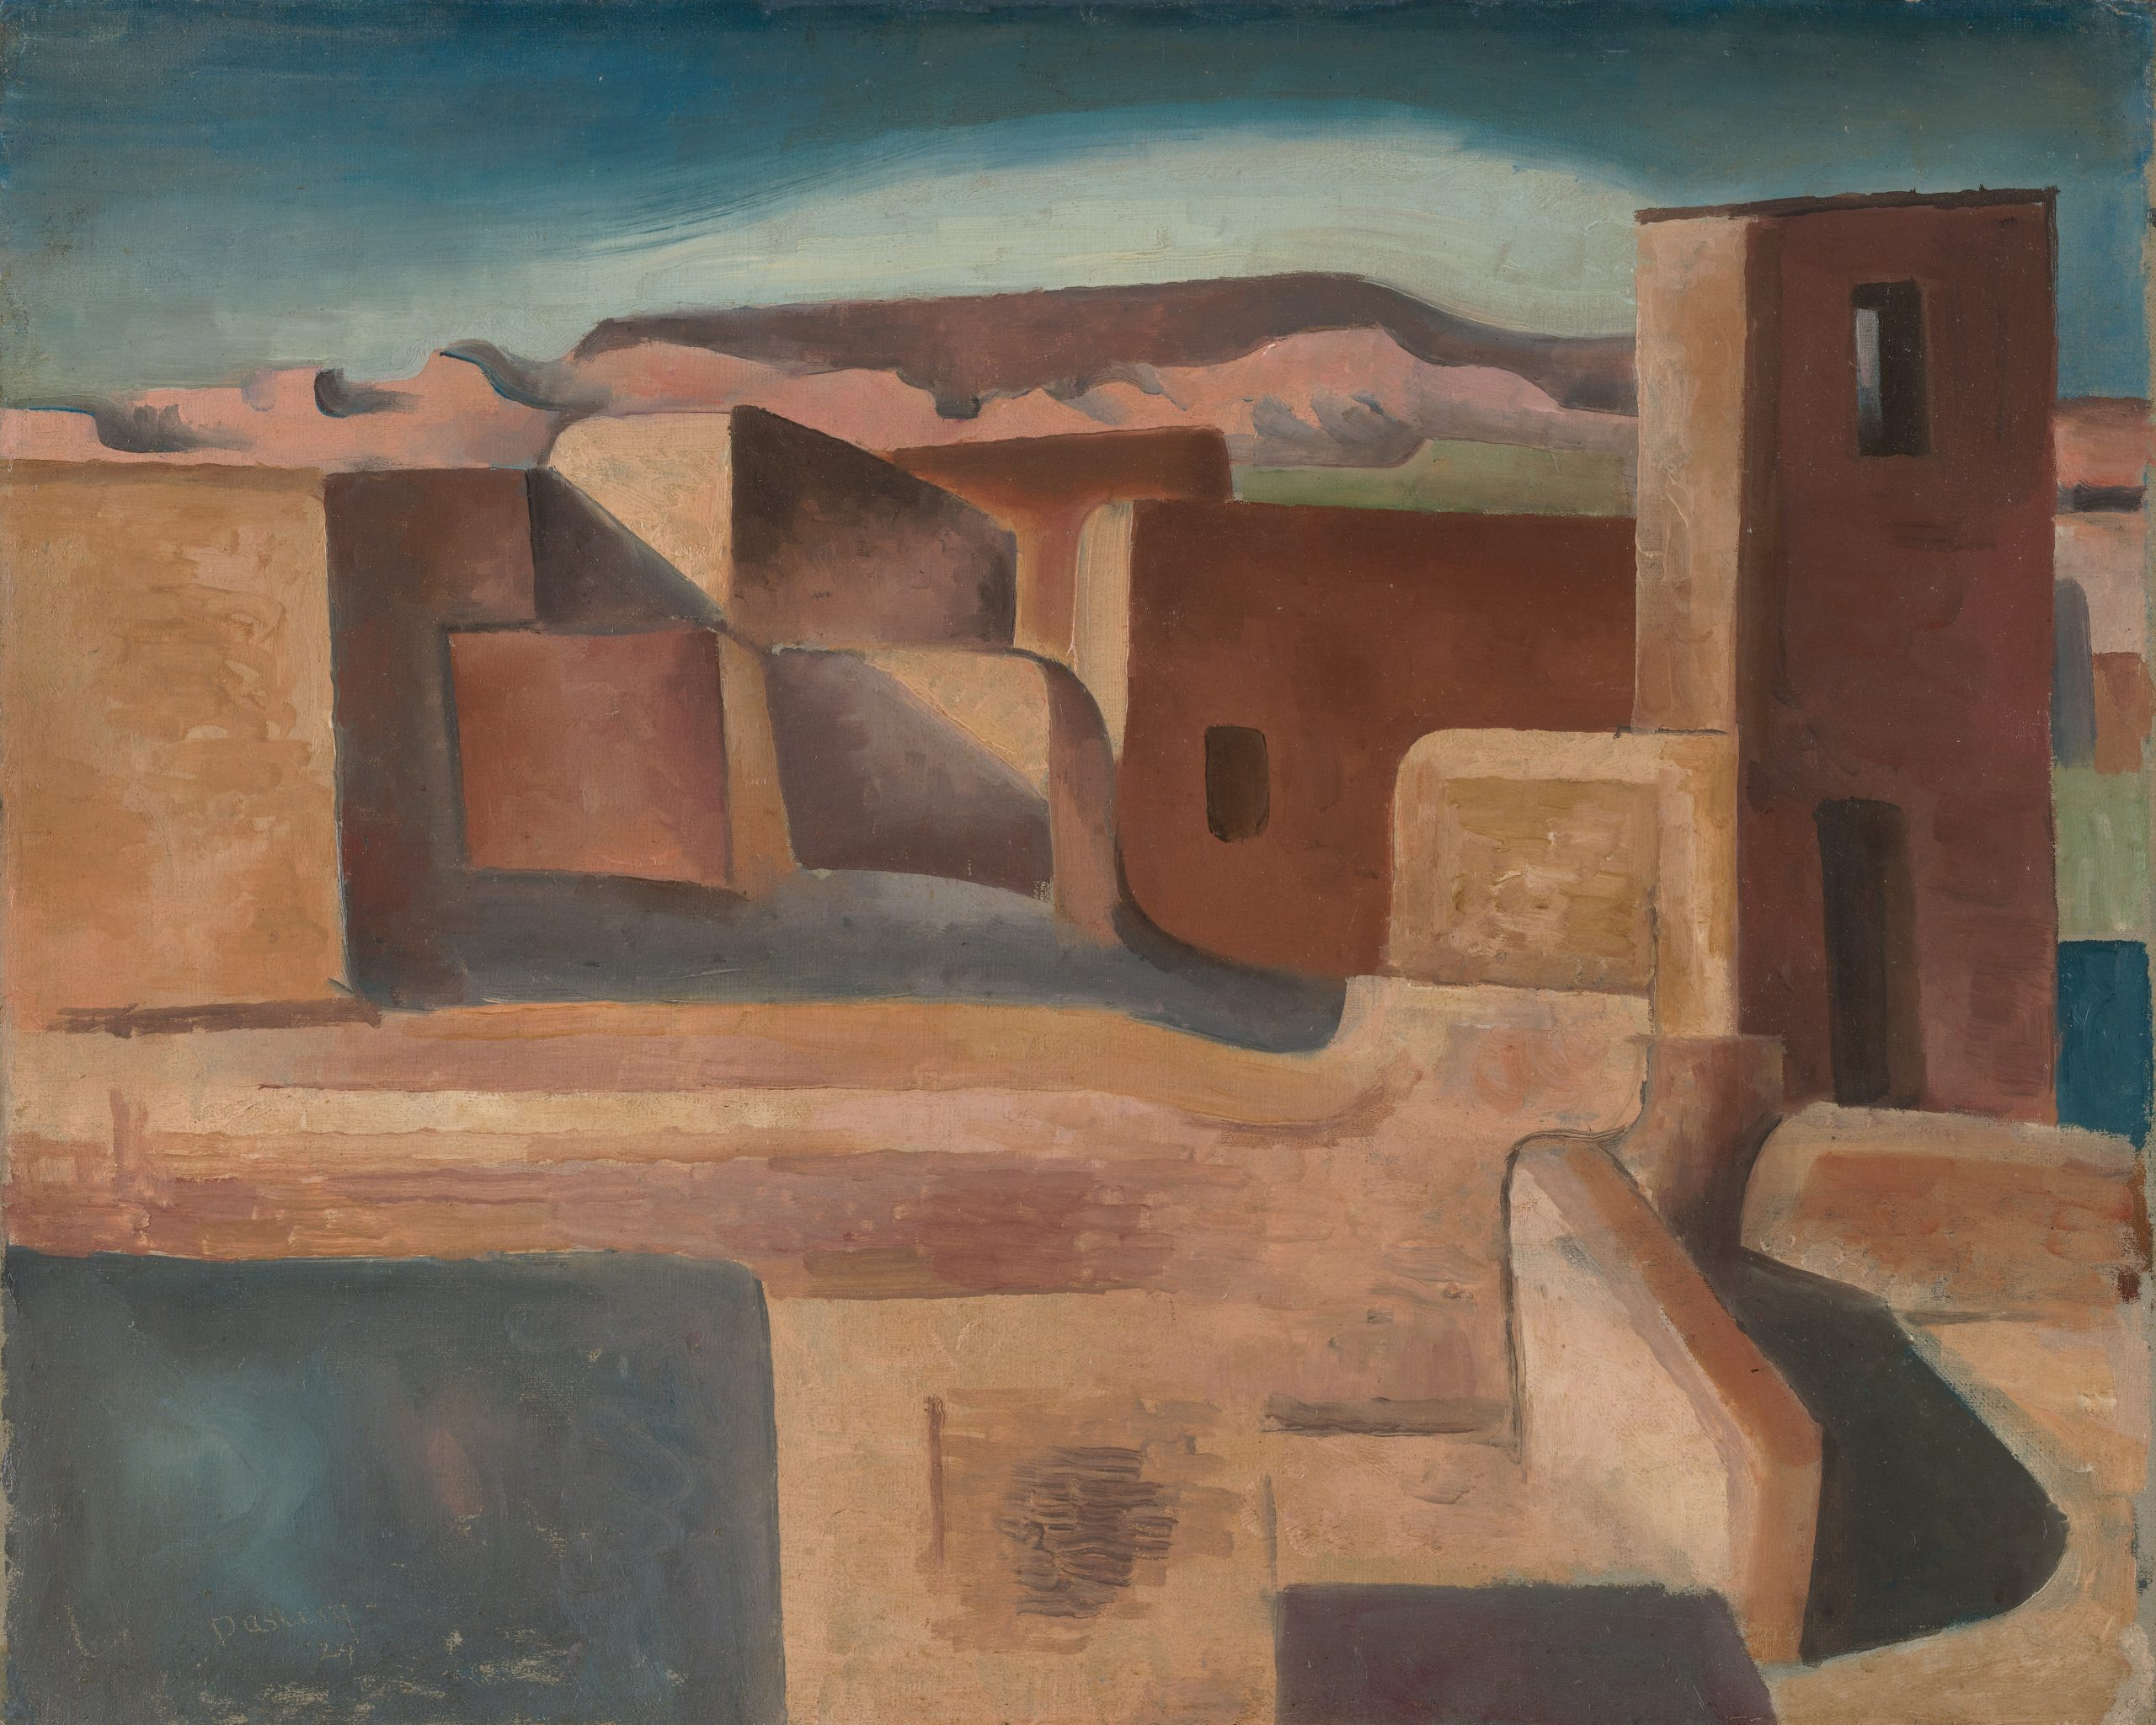 Painting of adobe buildings including a church set against a plateau on the horizon.